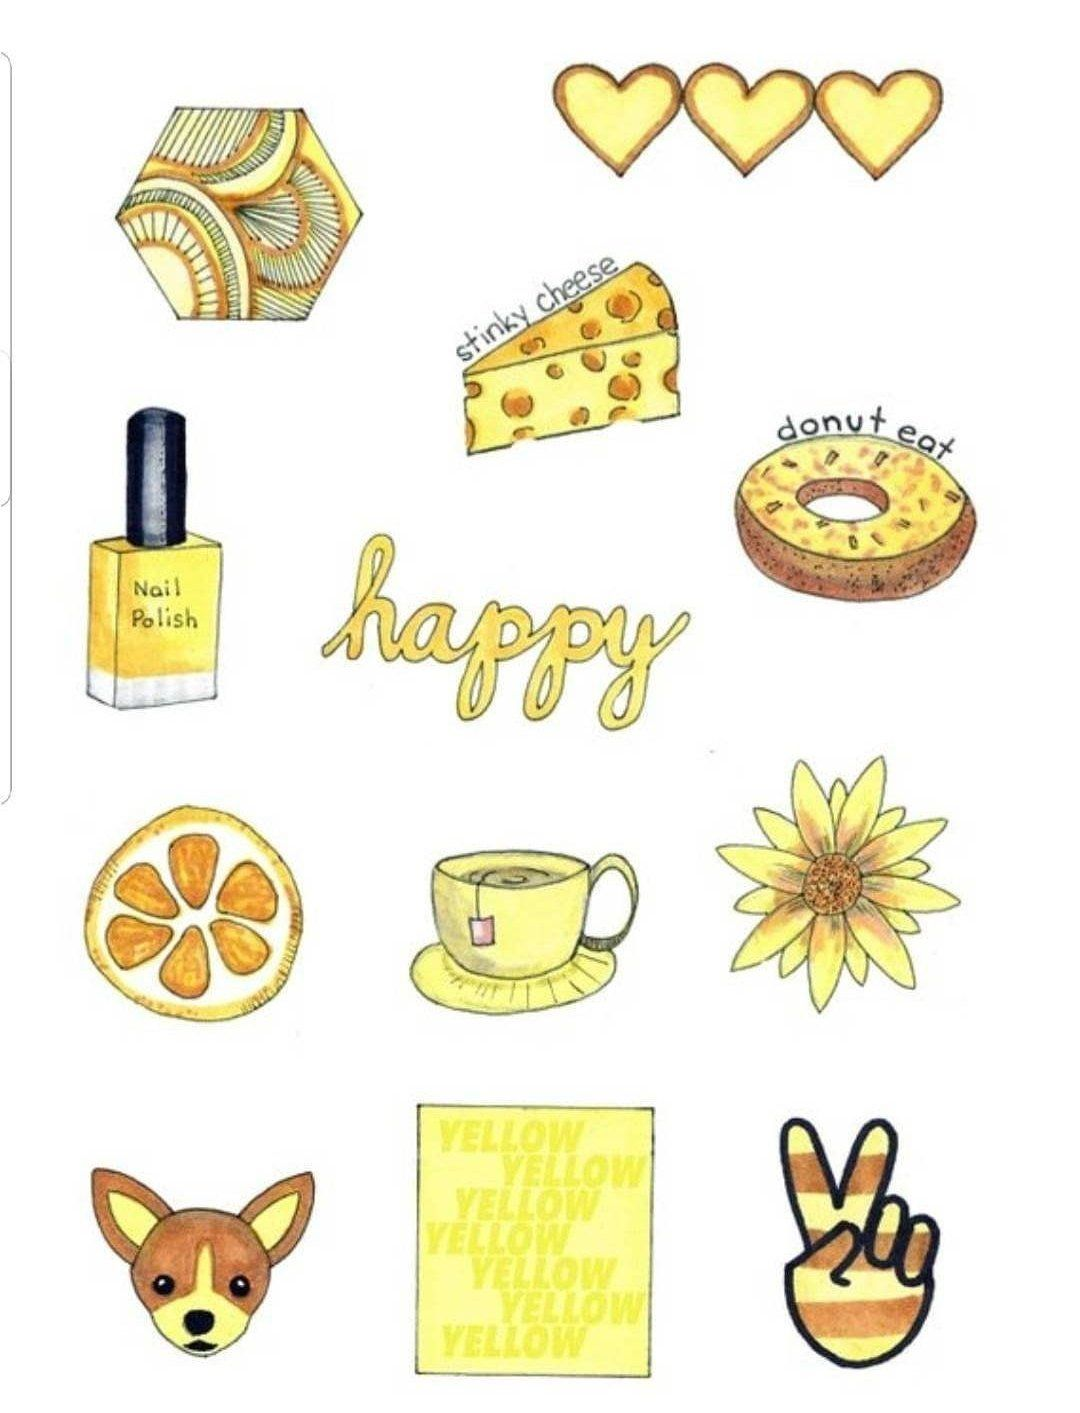 Mini yellow aesthetic sticker pack by designbychesa on etsy